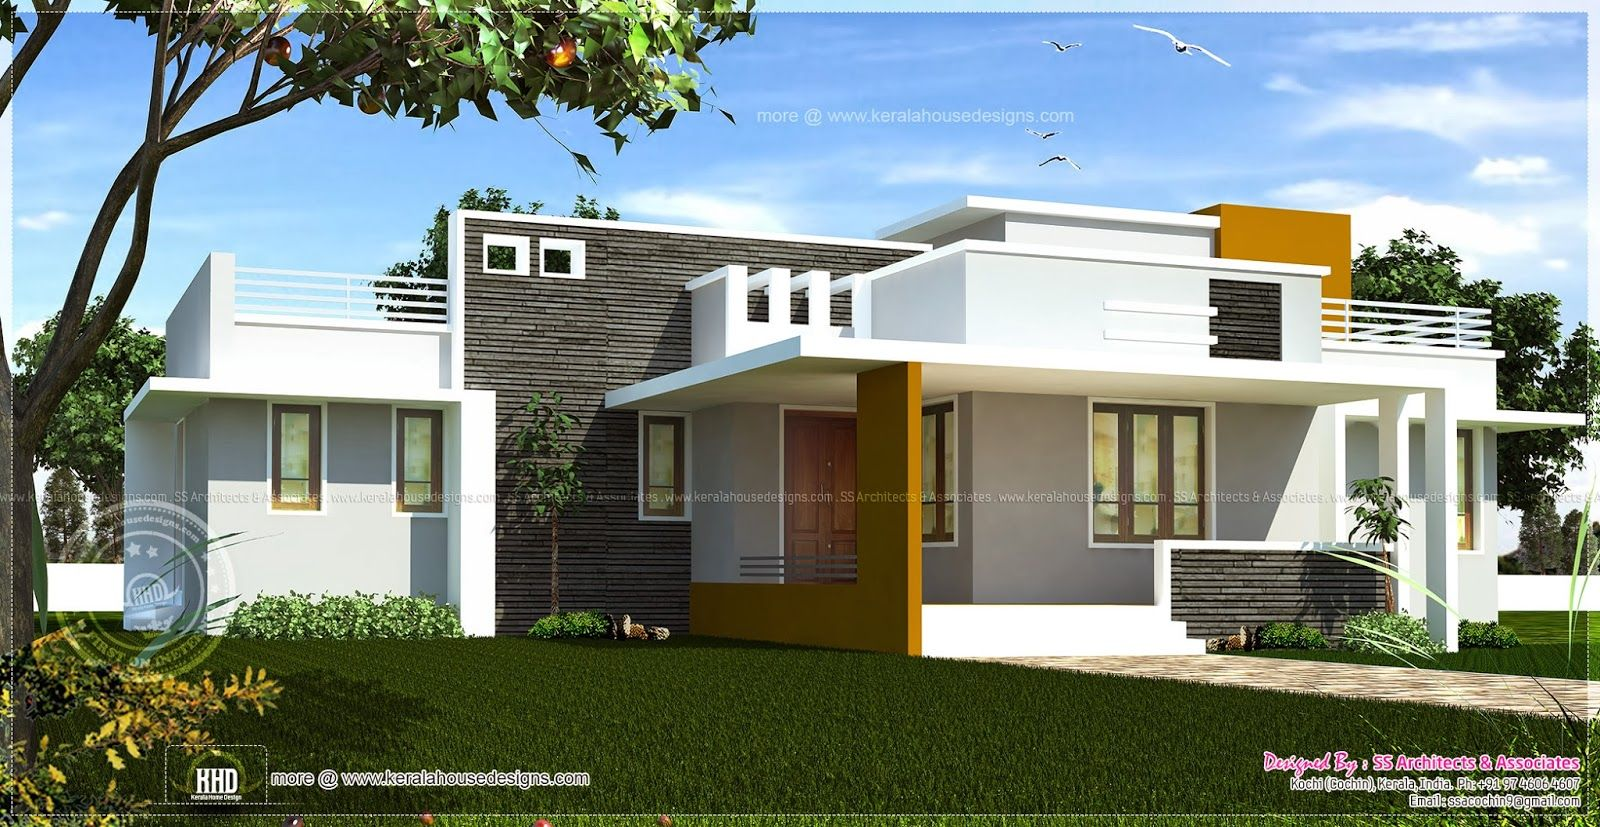 Excellent single home designs single floor contemporary house design kerala home design and floor home design